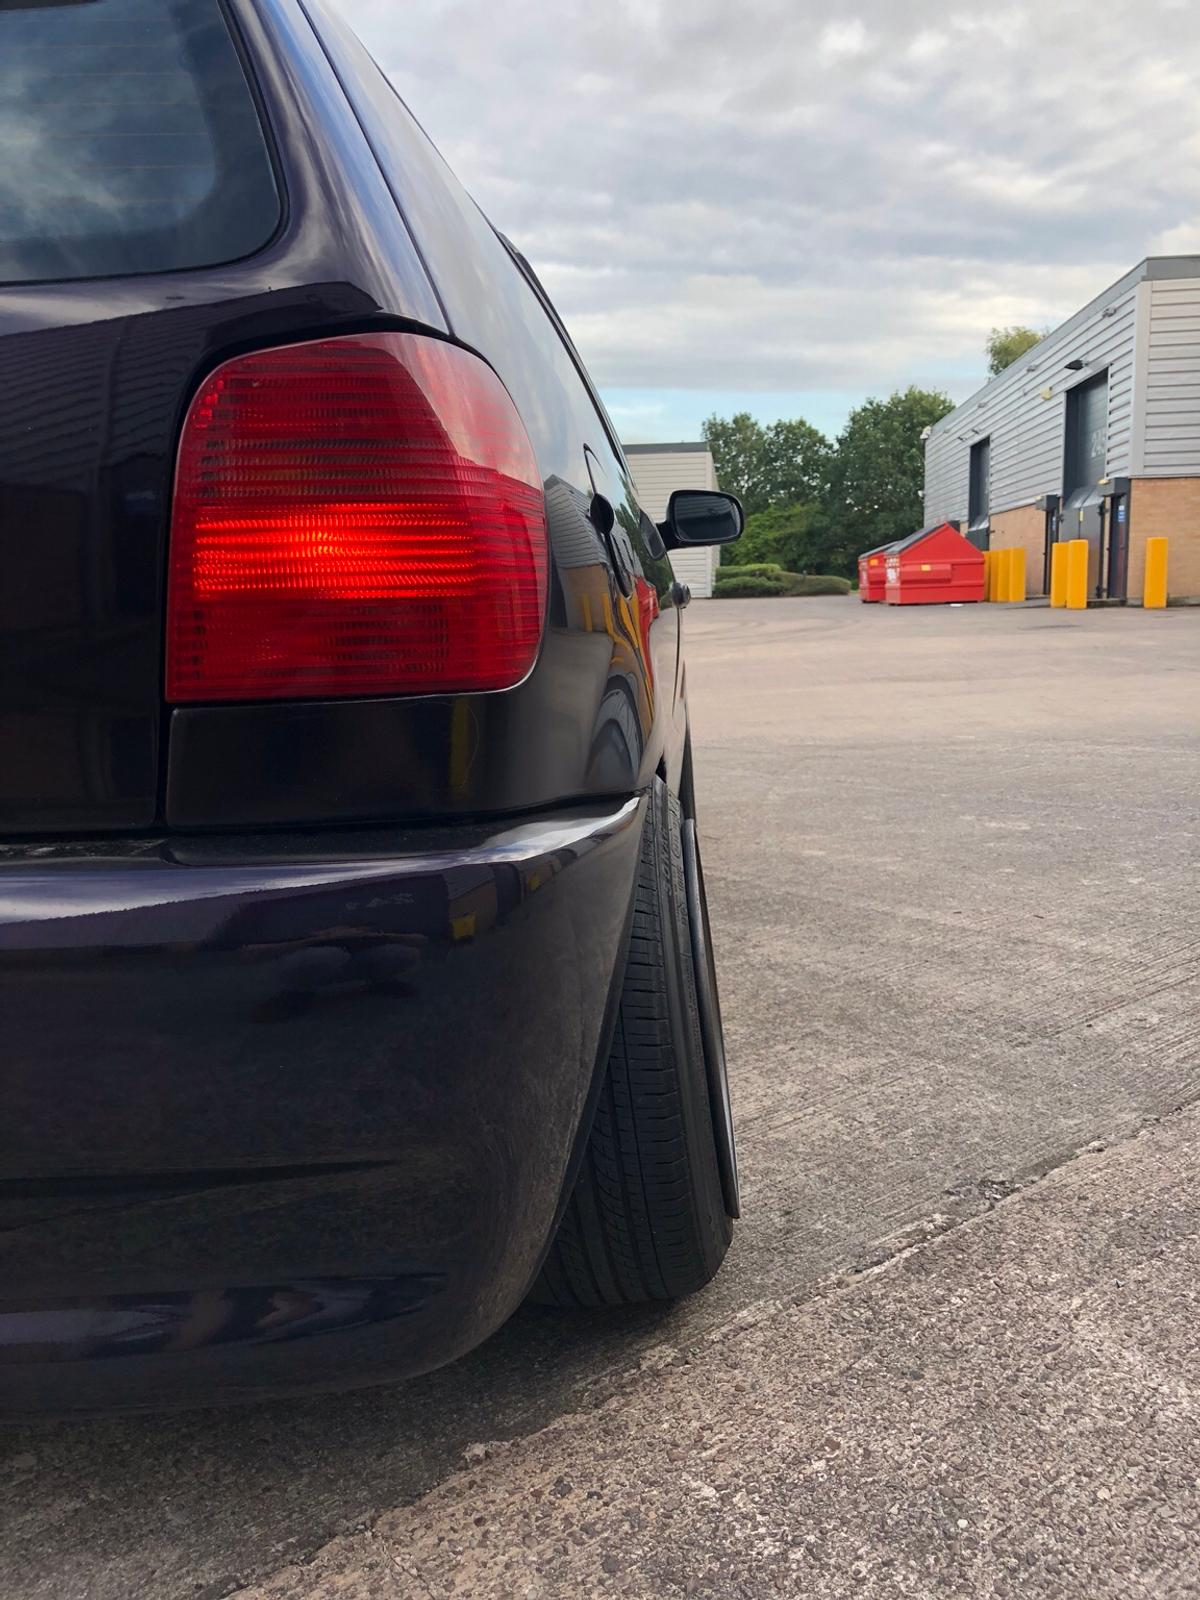 VW POLO 6n Modified (Reduced) in WA10 Helens for £1,100 00